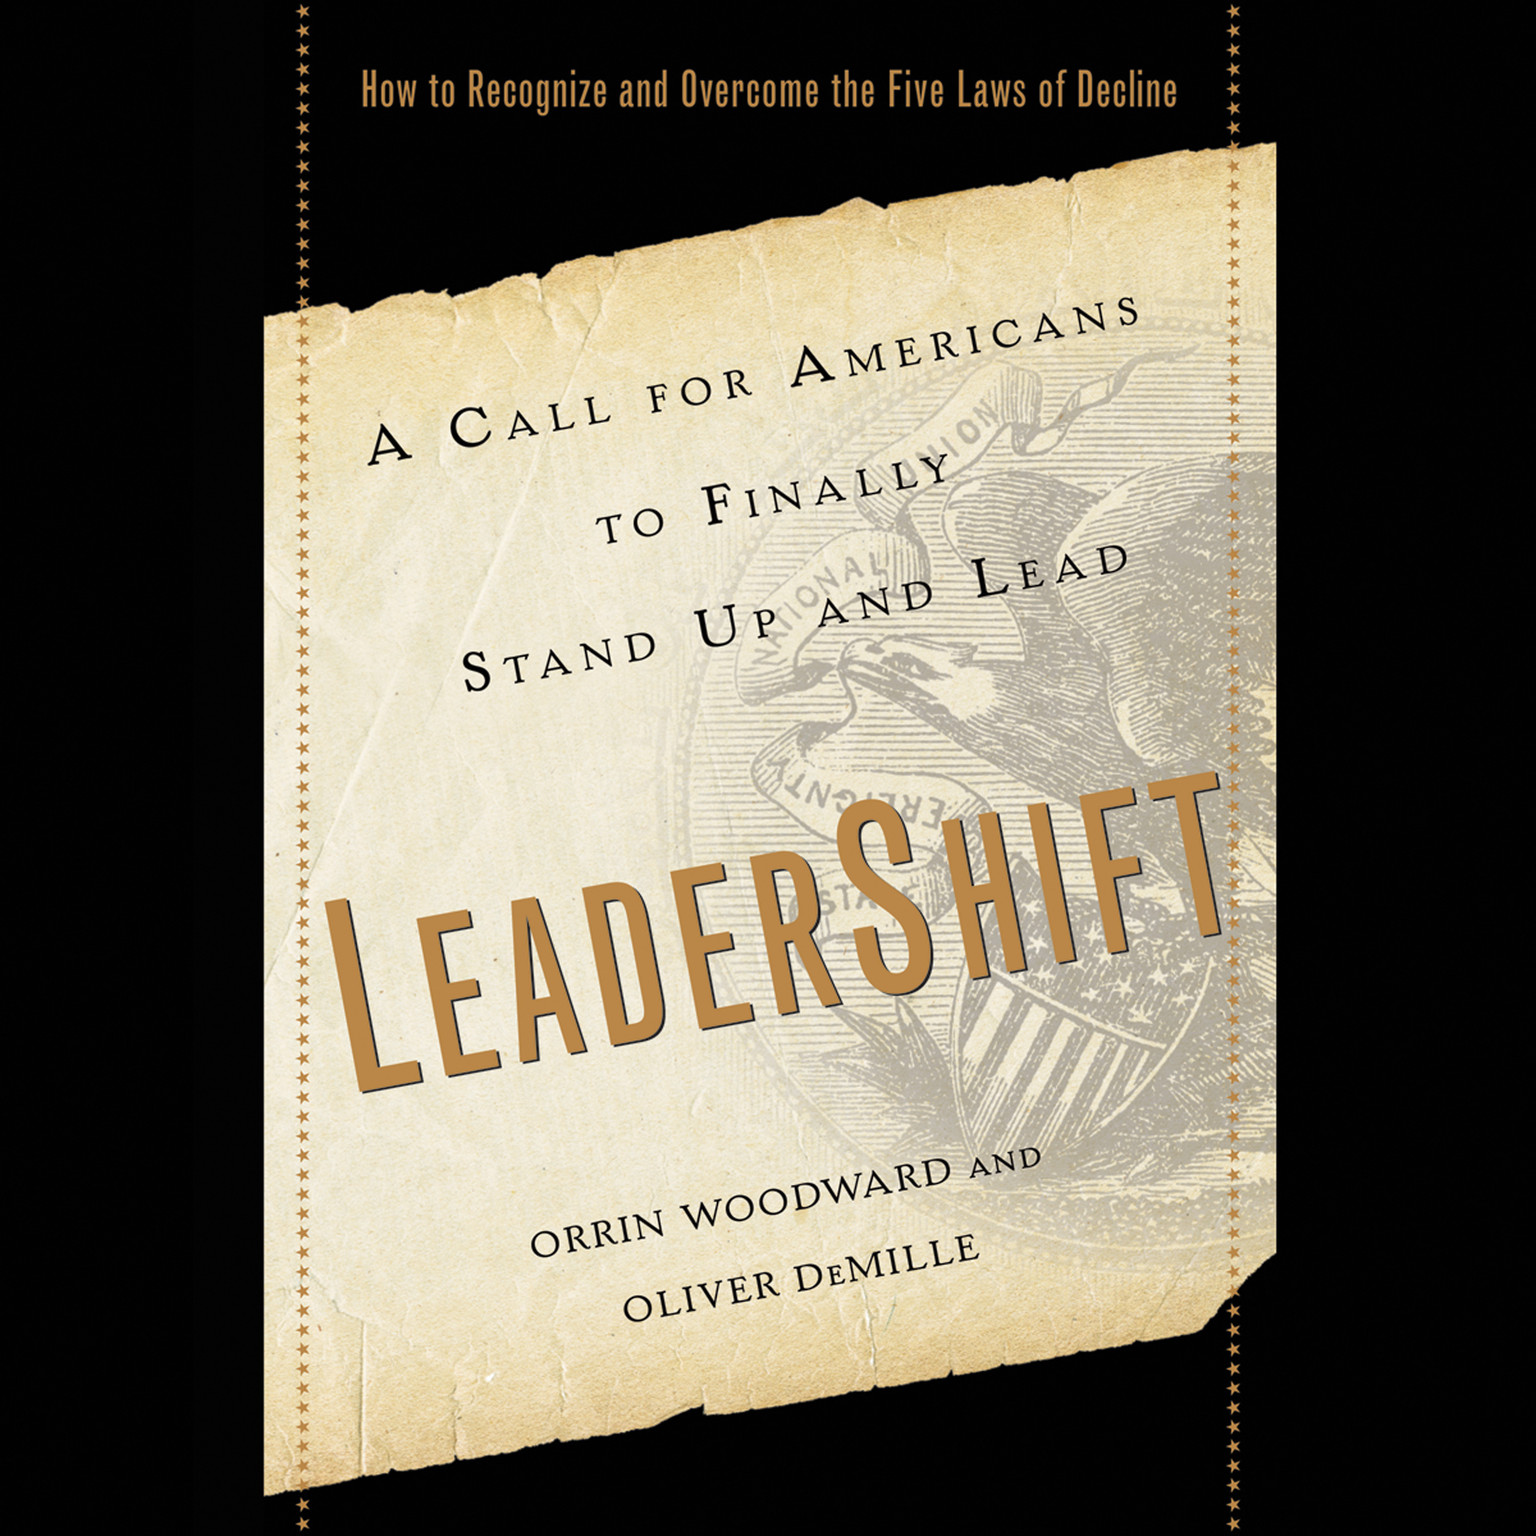 Printable LeaderShift: A Call for Americans to Finally Stand Up and Lead Audiobook Cover Art